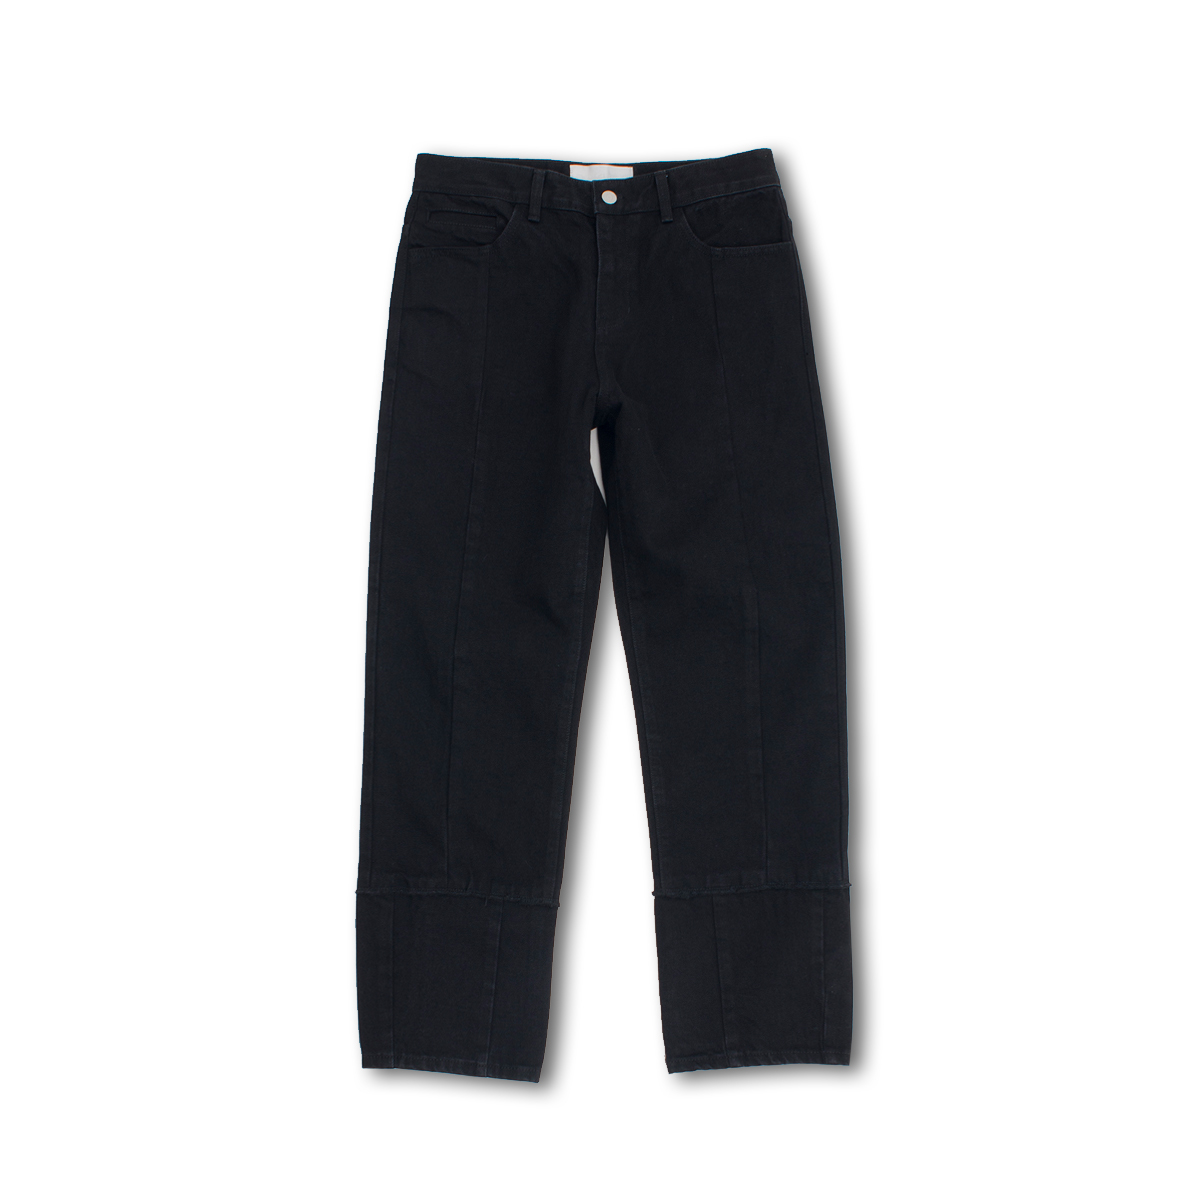 [GAKURO] TAPERED DENIM PANTS 'BLACK ONE WASHED'